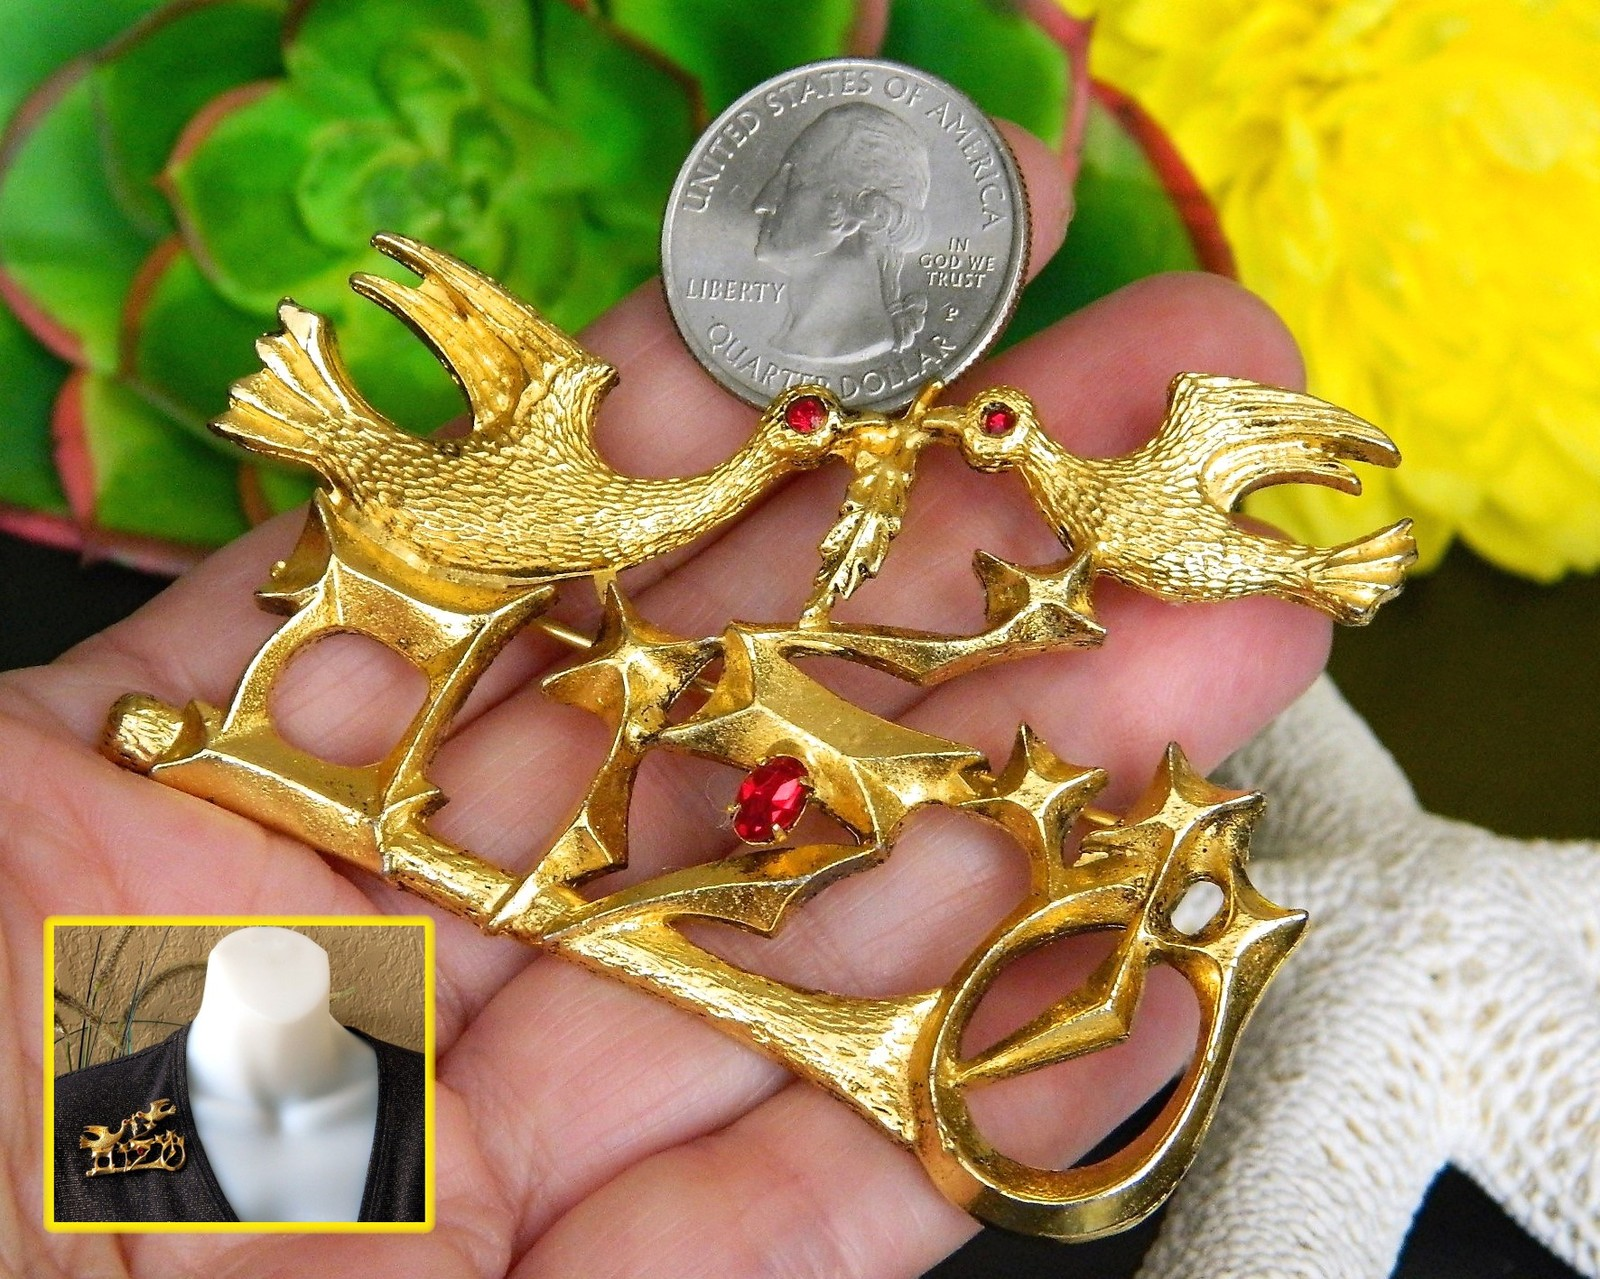 Judaica Doves Olive Branch Brooch Pin Shalom Peace Chaim Gross Israel